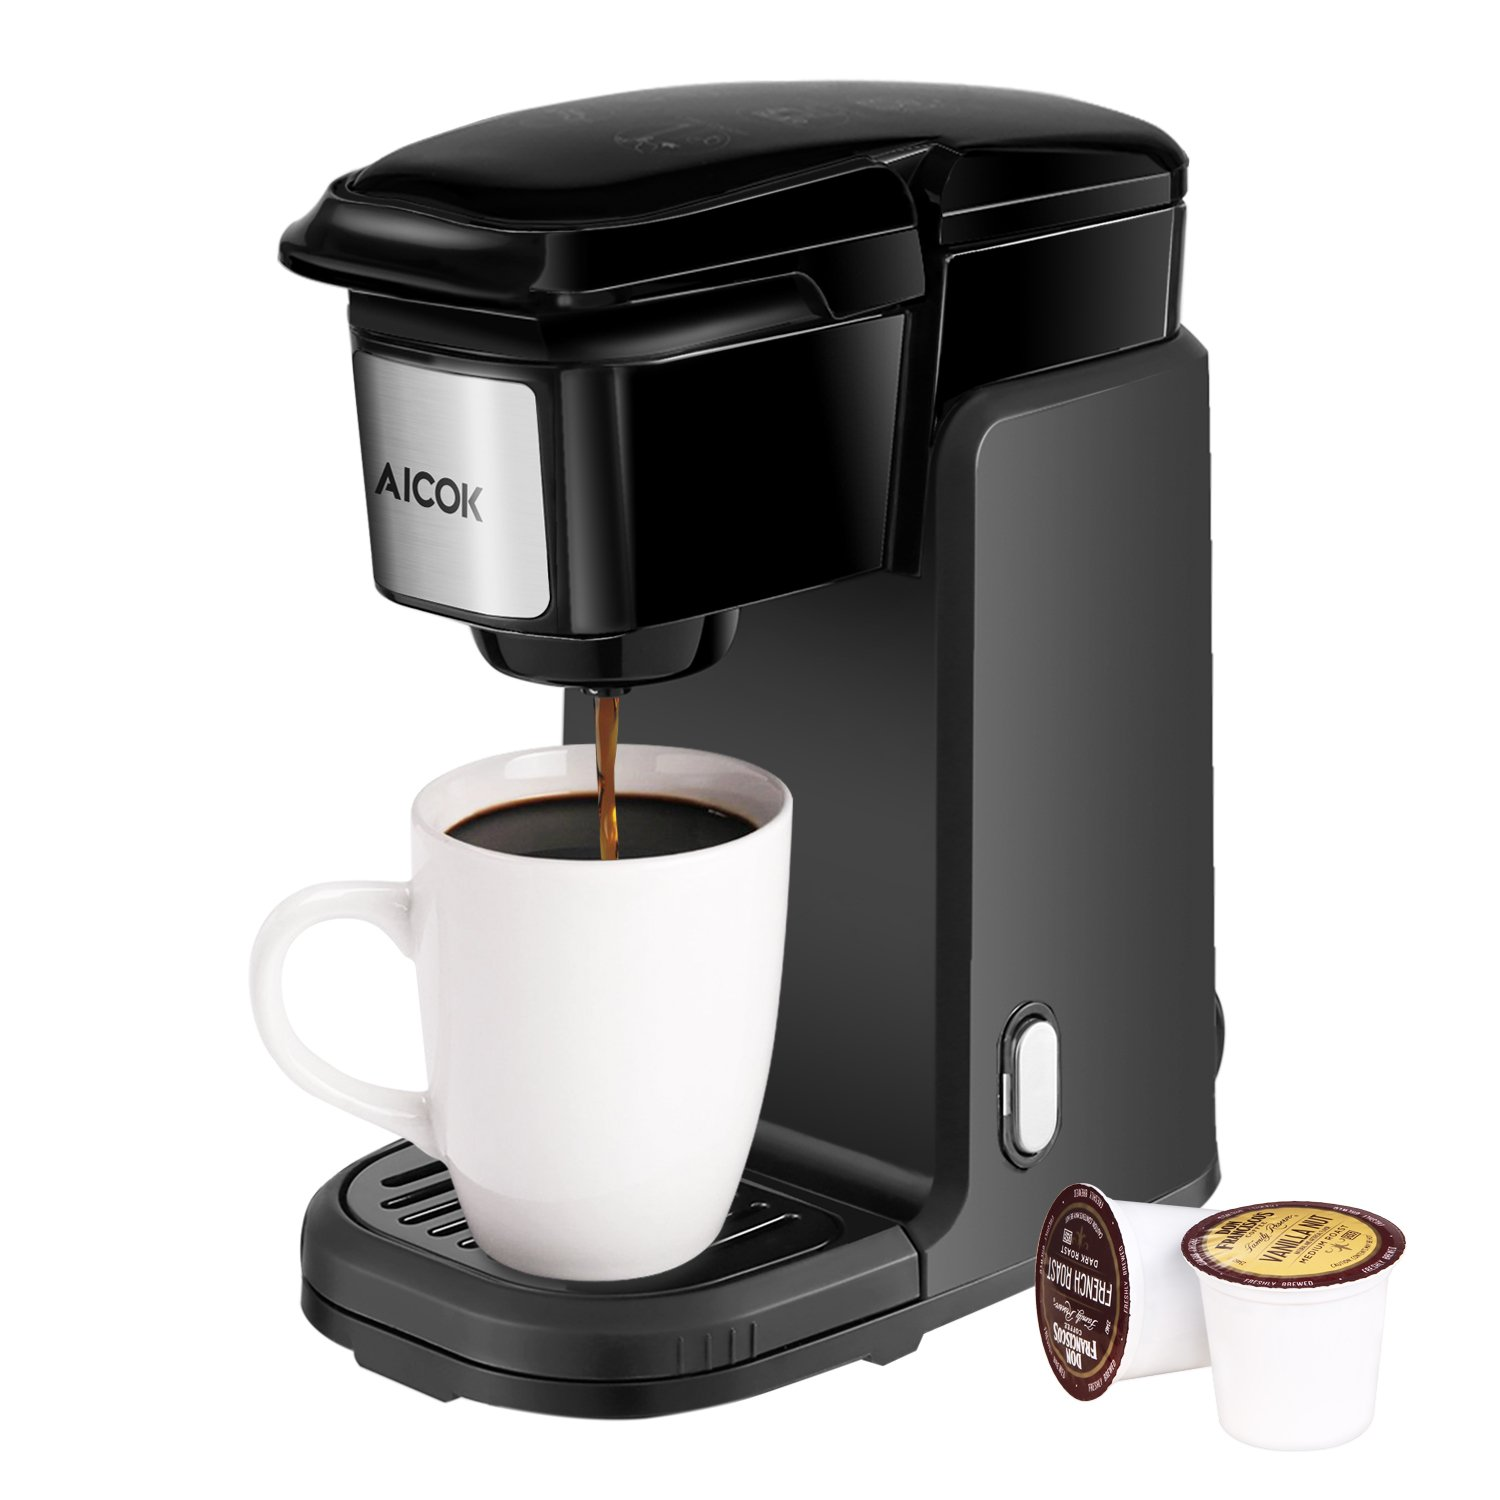 Single Serve Coffee Maker, AICOK Single Cup Coffee Maker, 800W Single Serve Coffee Brewer For K Cup Pods, One Cup Coffee Maker with Quick Brew Technology, Black